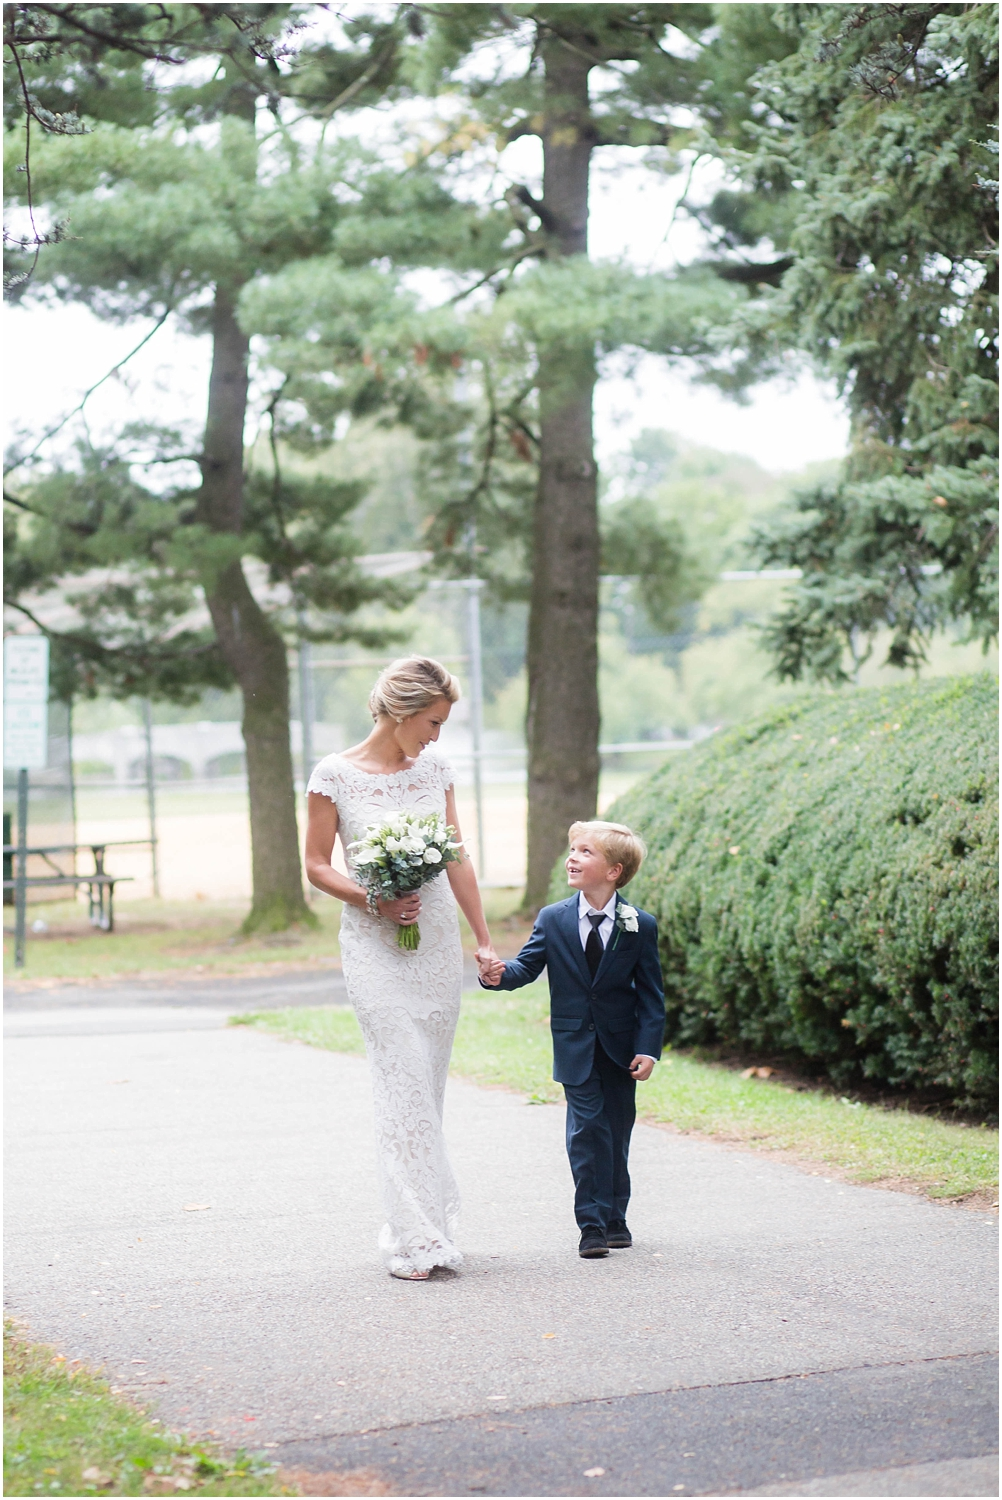 Intimate Outdoor New Jersey Wedding